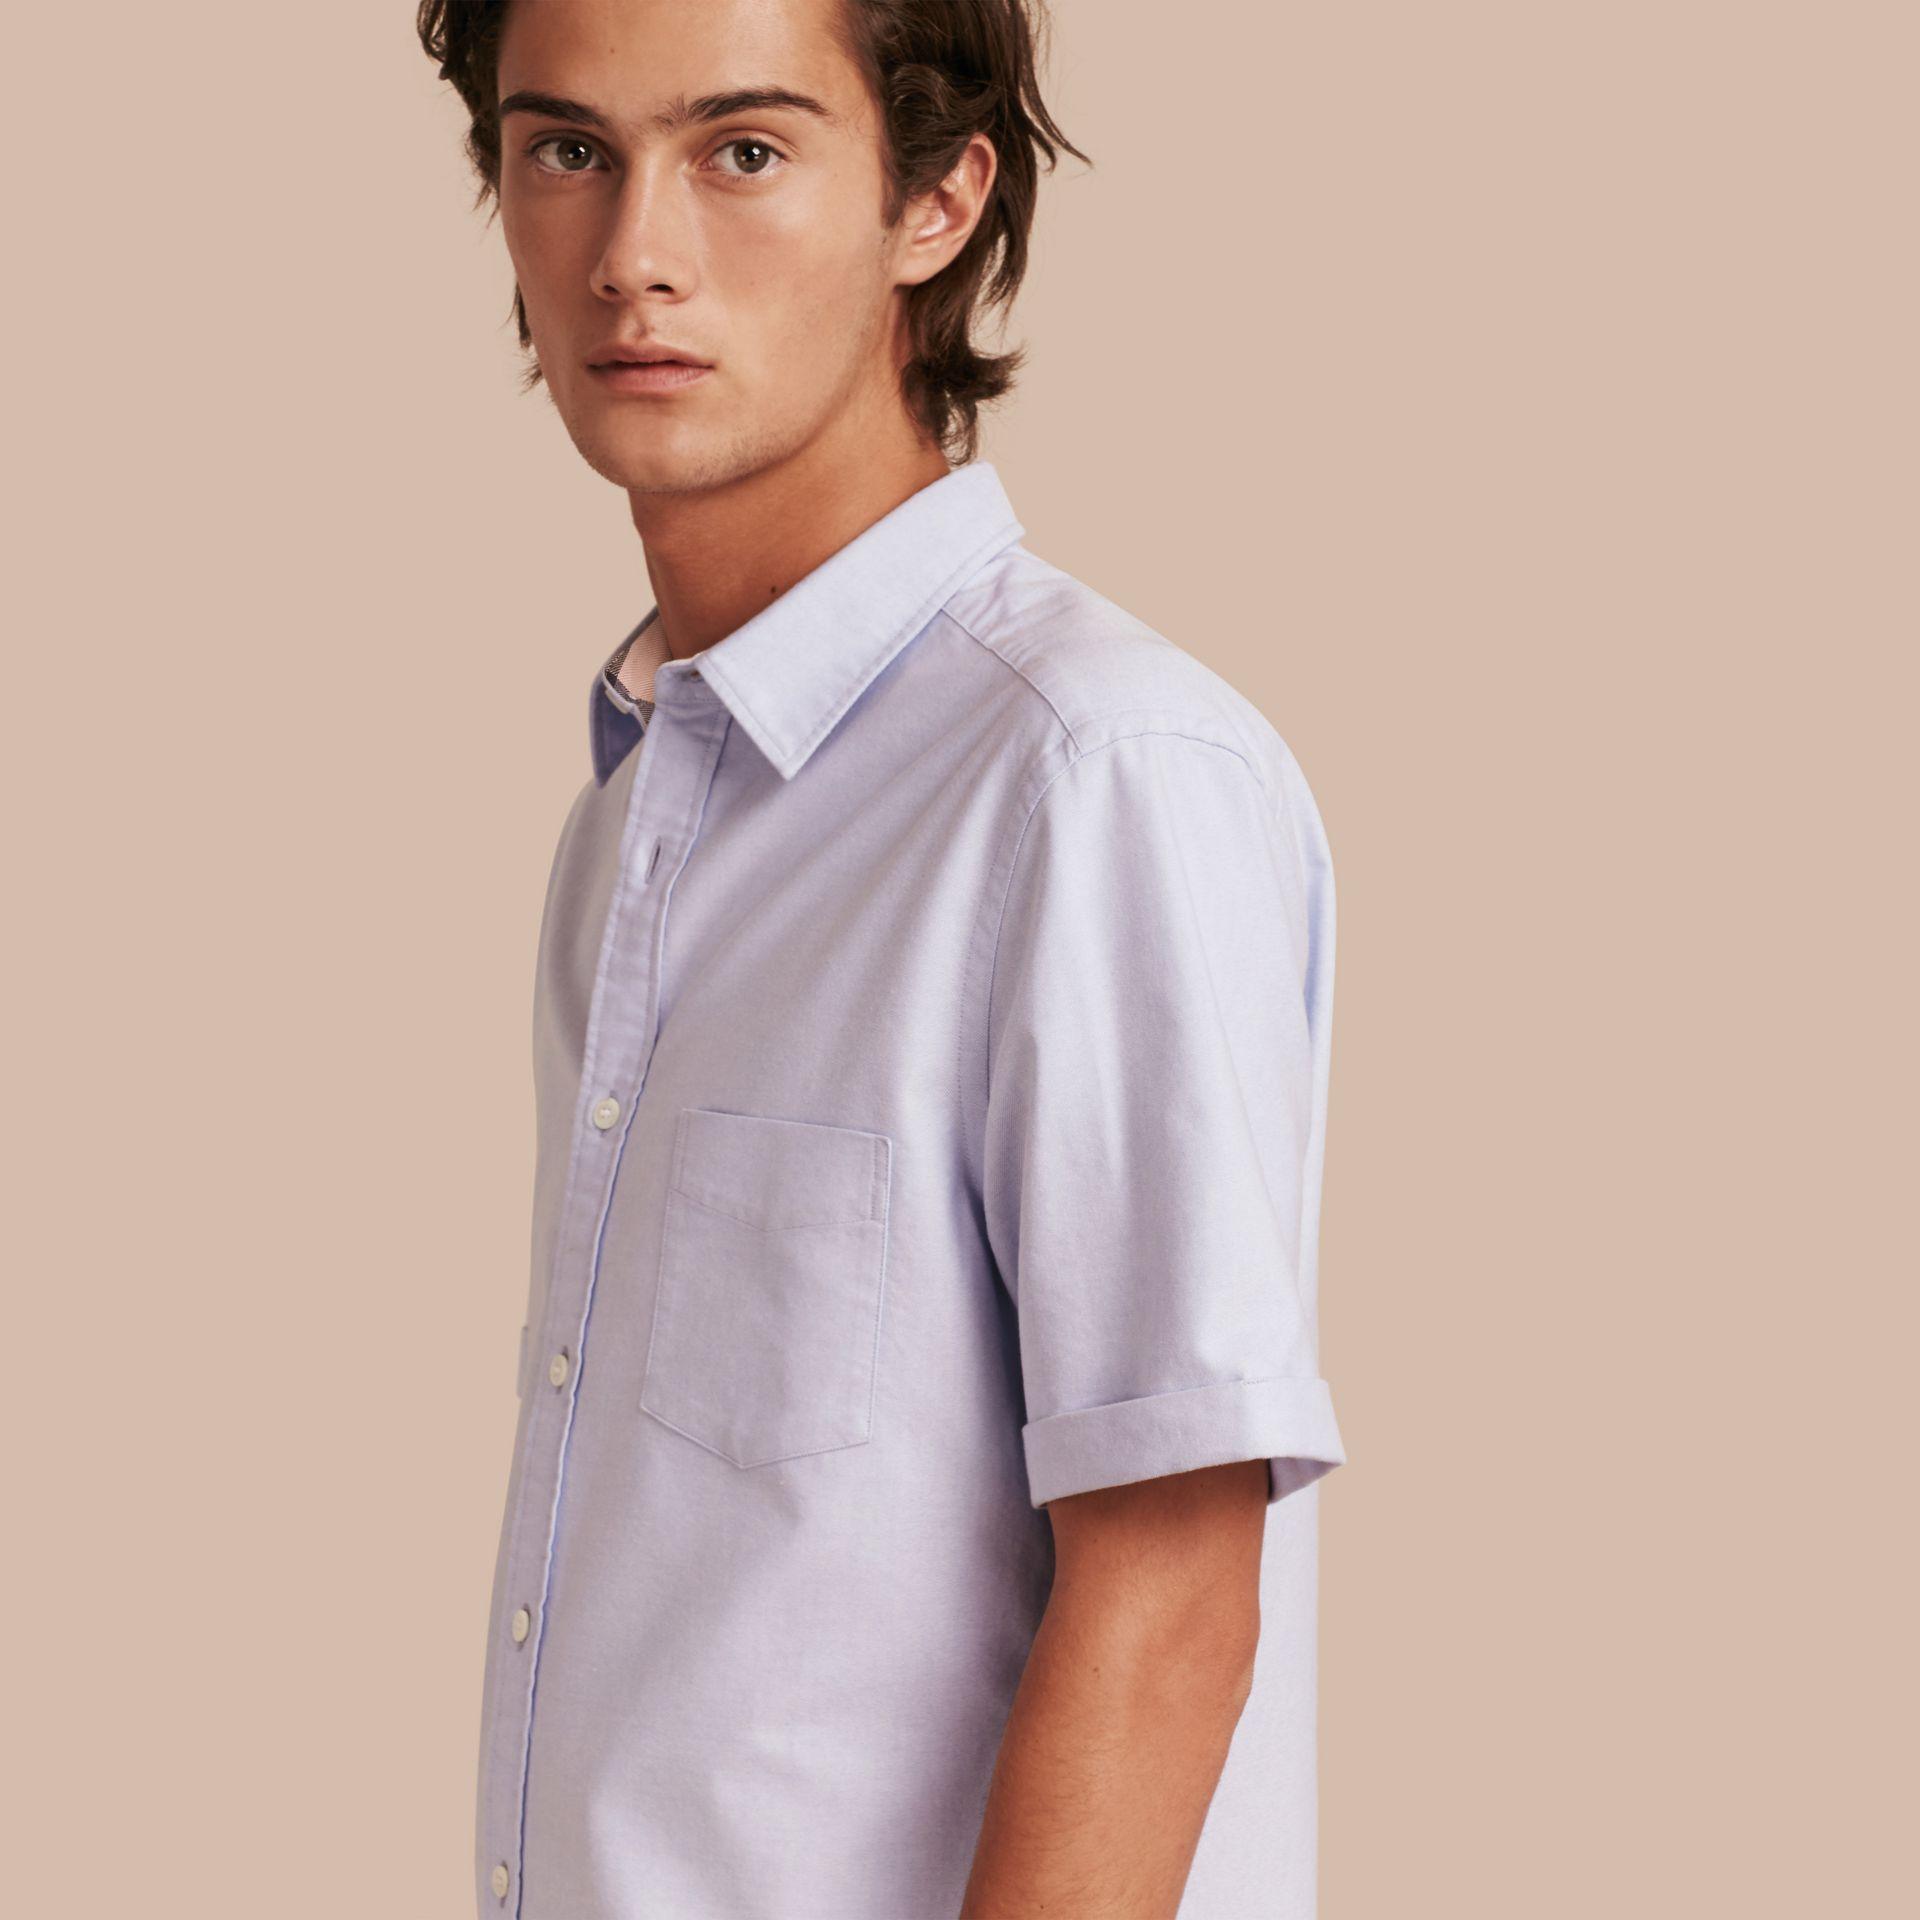 Cornflower blue Check Detail Short-Sleeved Cotton Oxford Shirt Cornflower Blue - gallery image 5